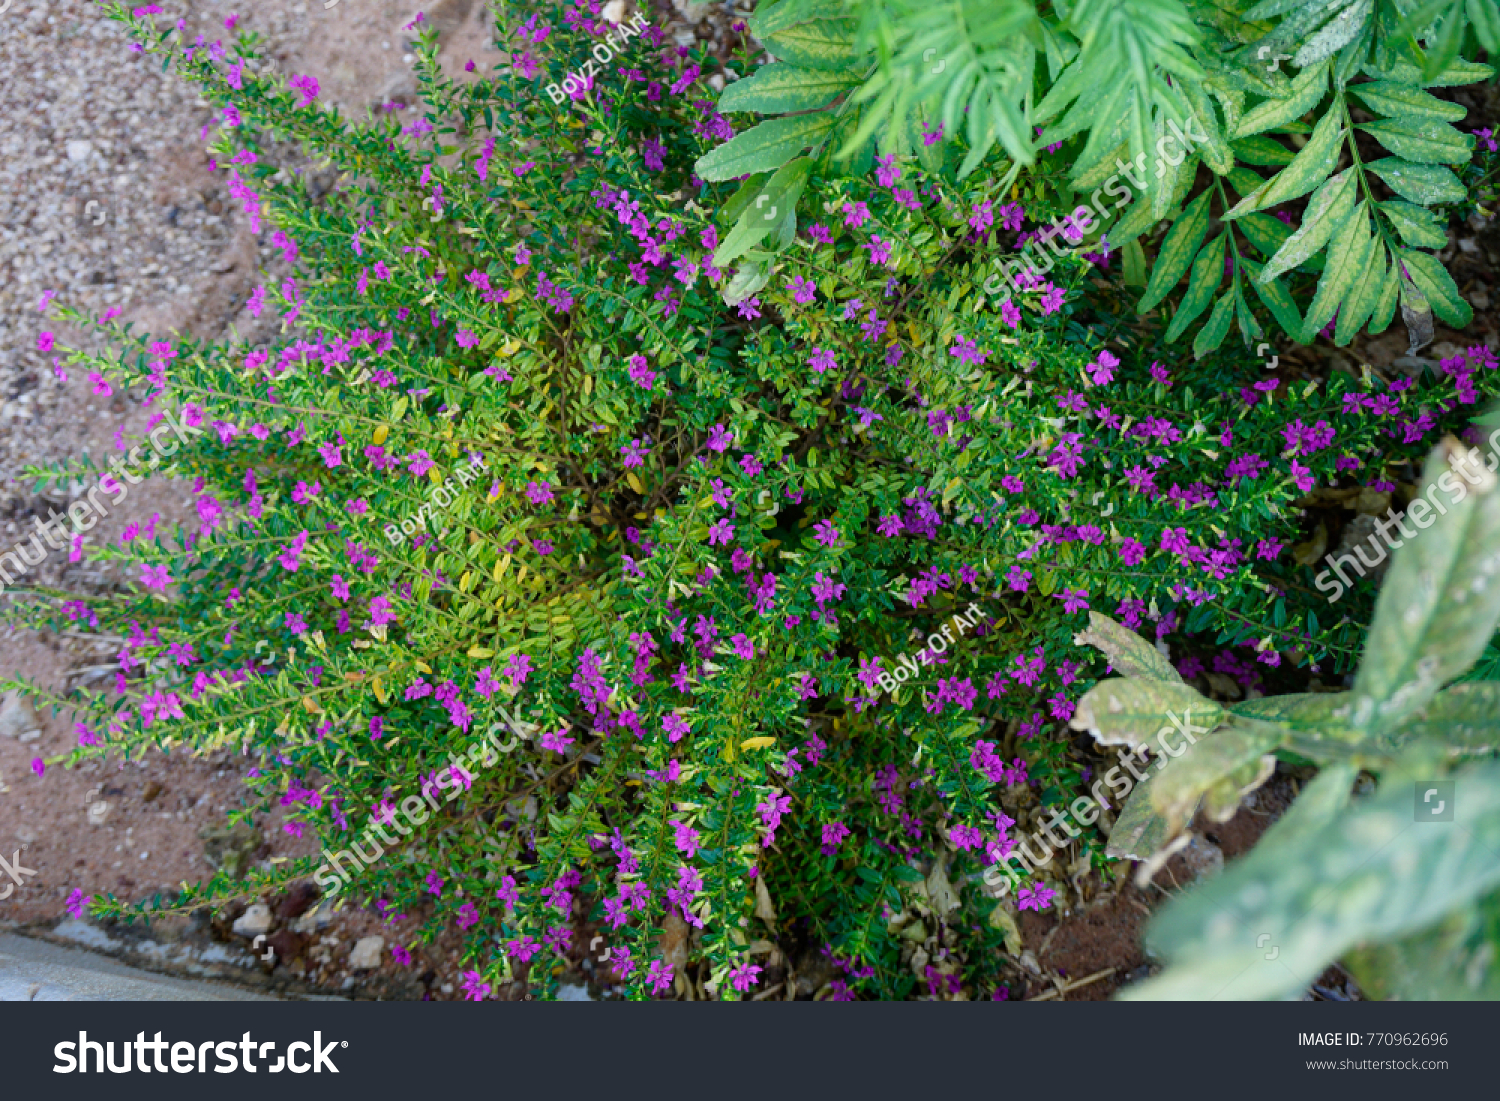 Cuphea hyssopifolia, False heather, Mexican heather, Hawaiian heather #770962696